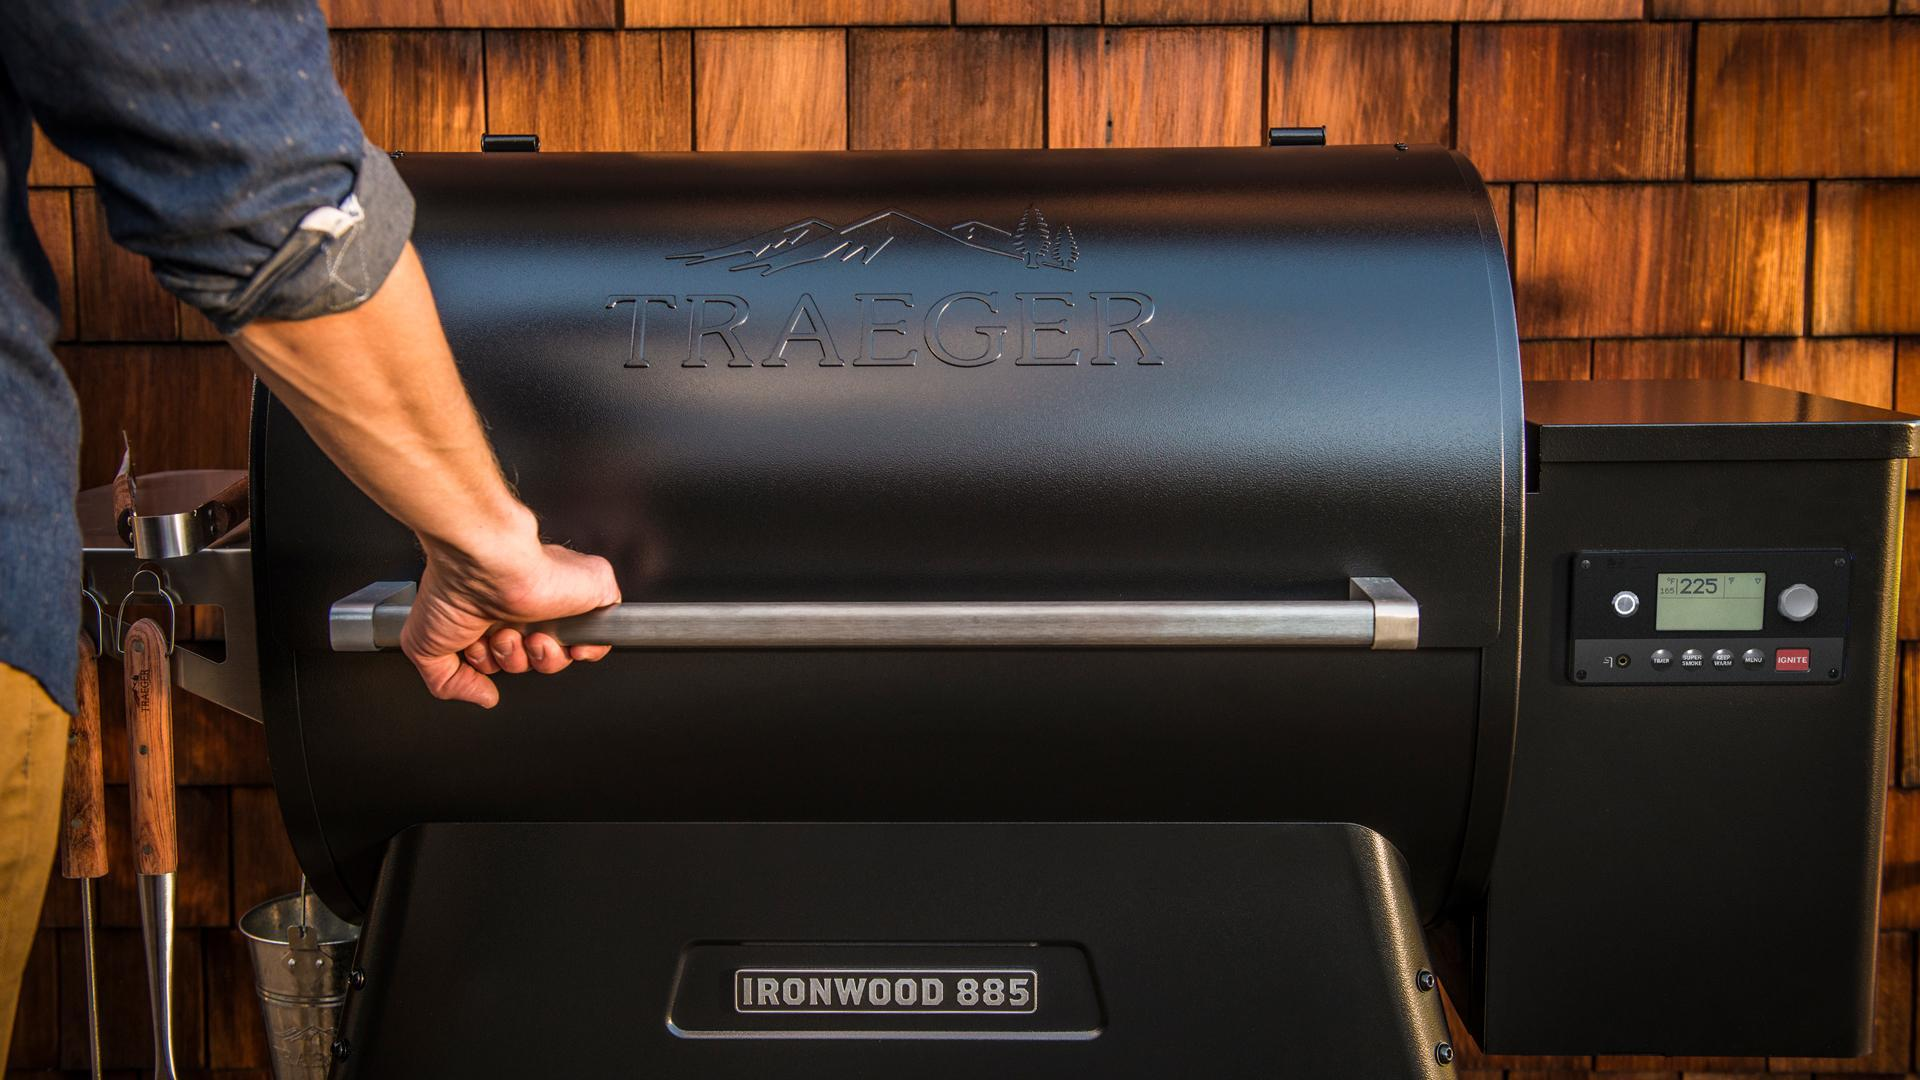 Win a Traeger Pro 575 Grill | Opening a Traeger Grill